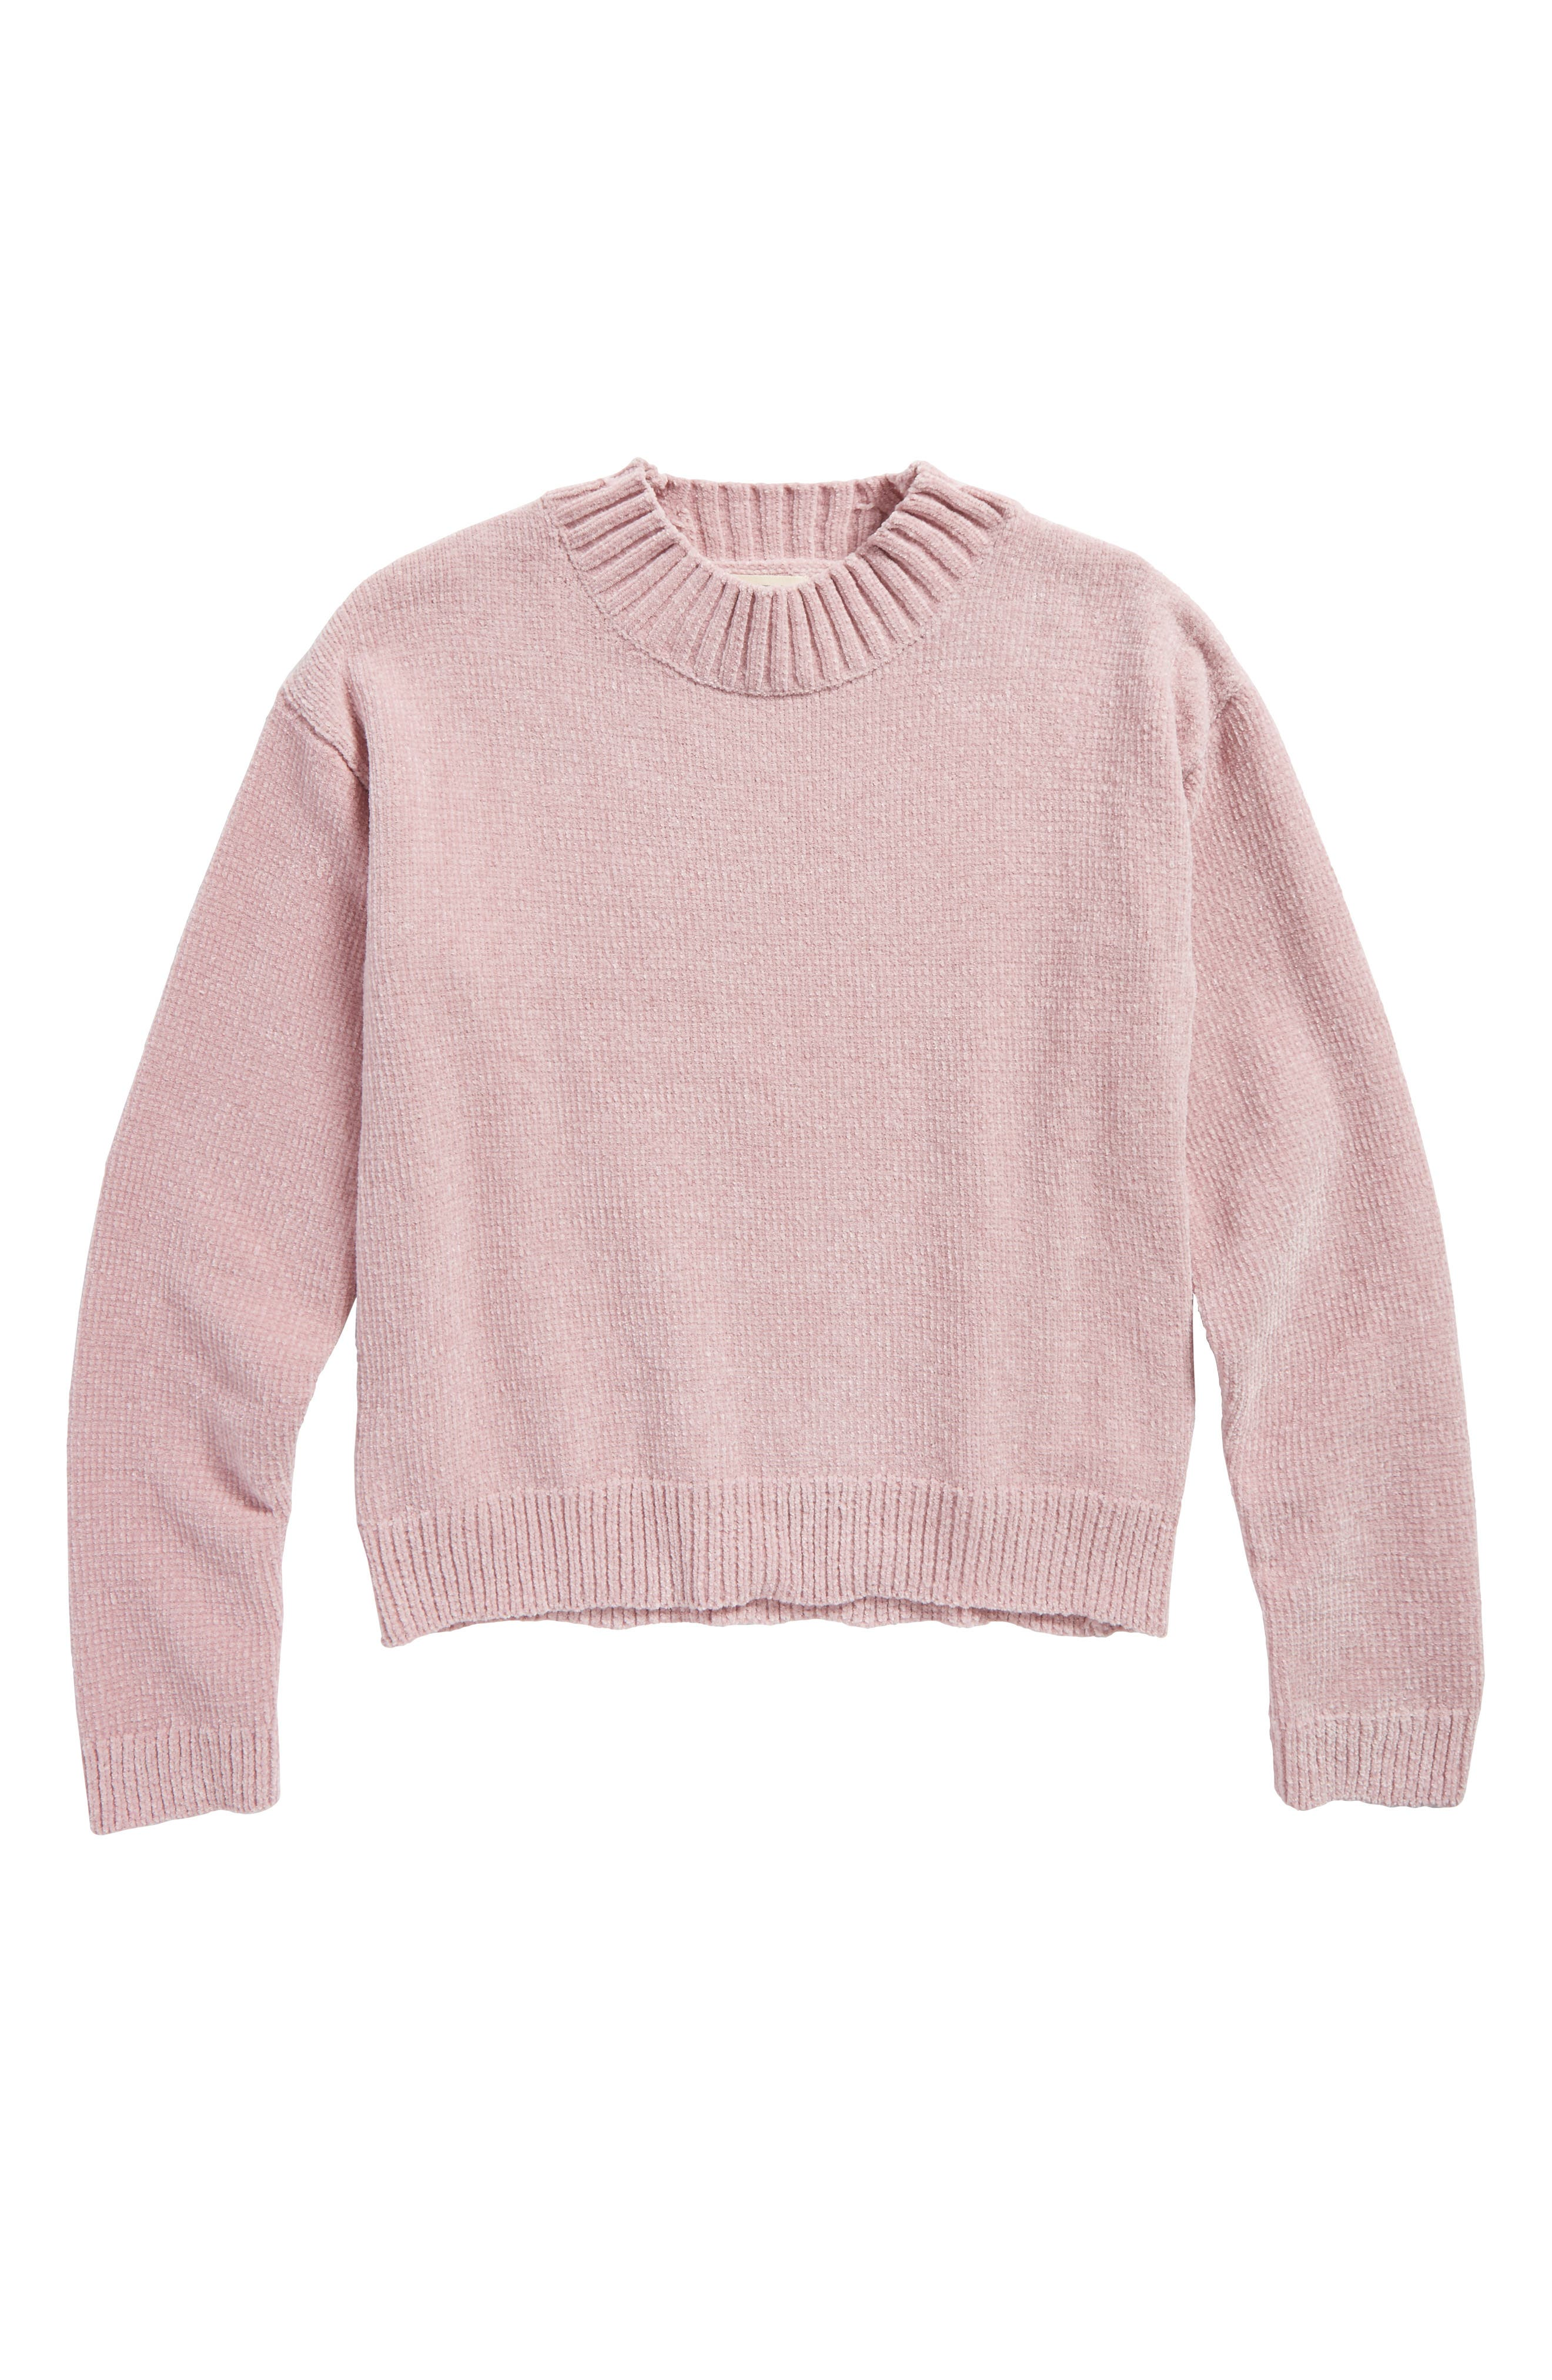 Chenille Mock Neck Sweater,                         Main,                         color, Pink Zephyr